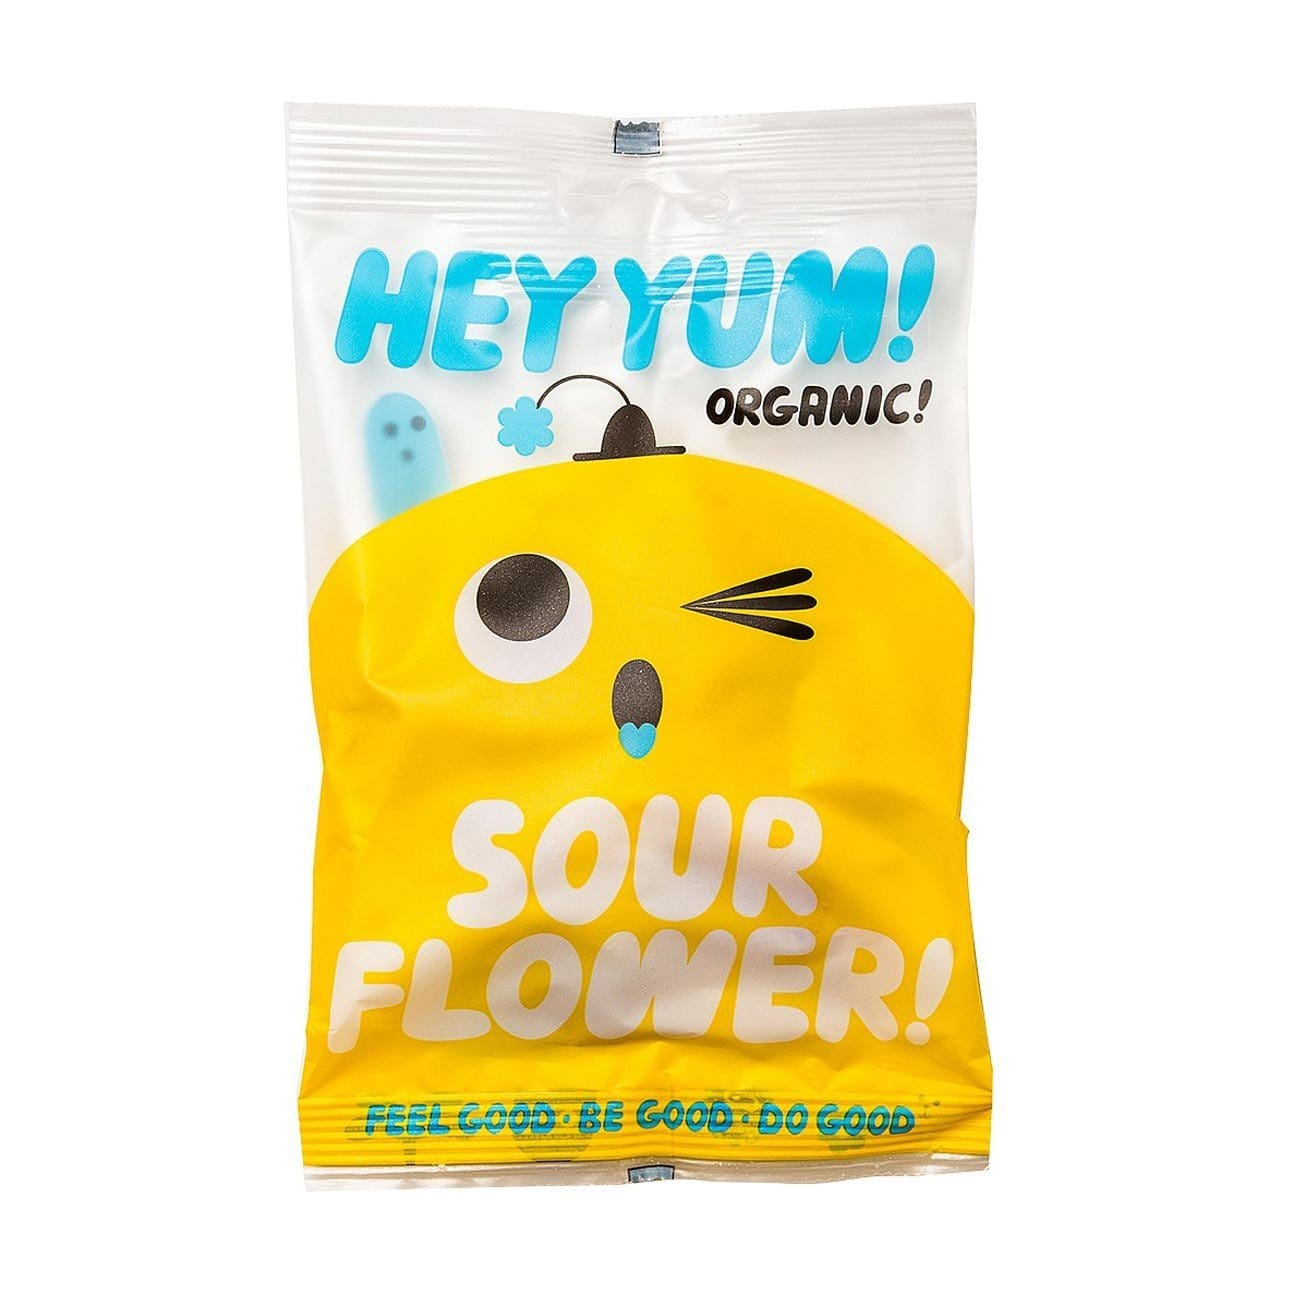 Sour Flower Organic Sweets